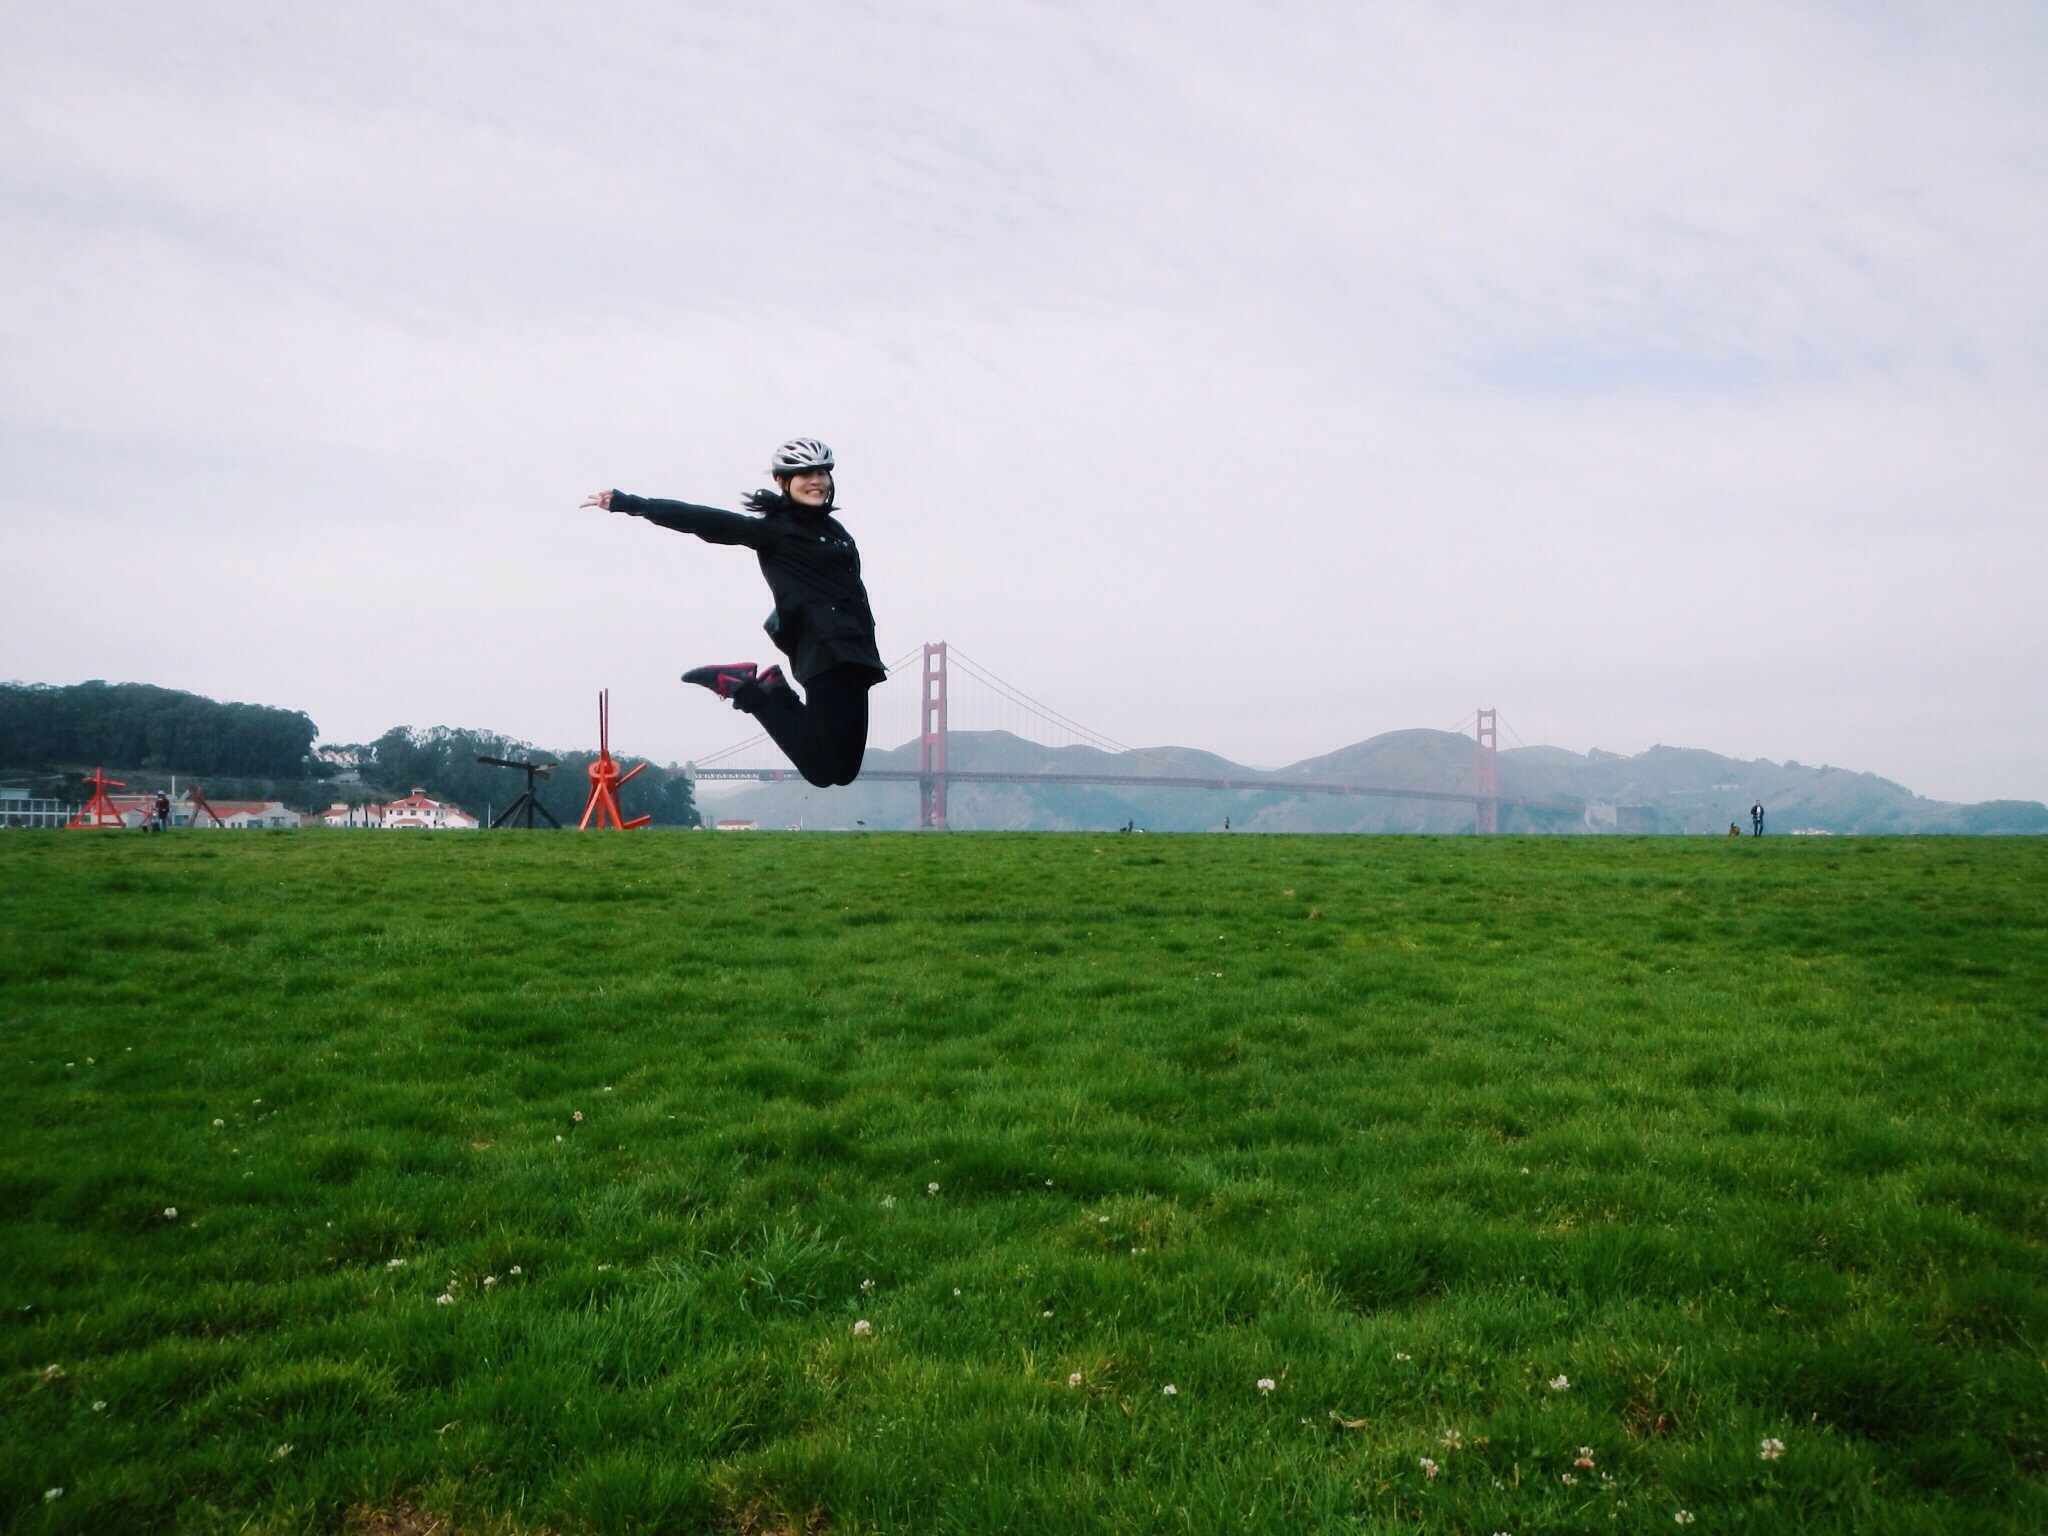 Viktoria Jean victory jump at Golden gate Bridge